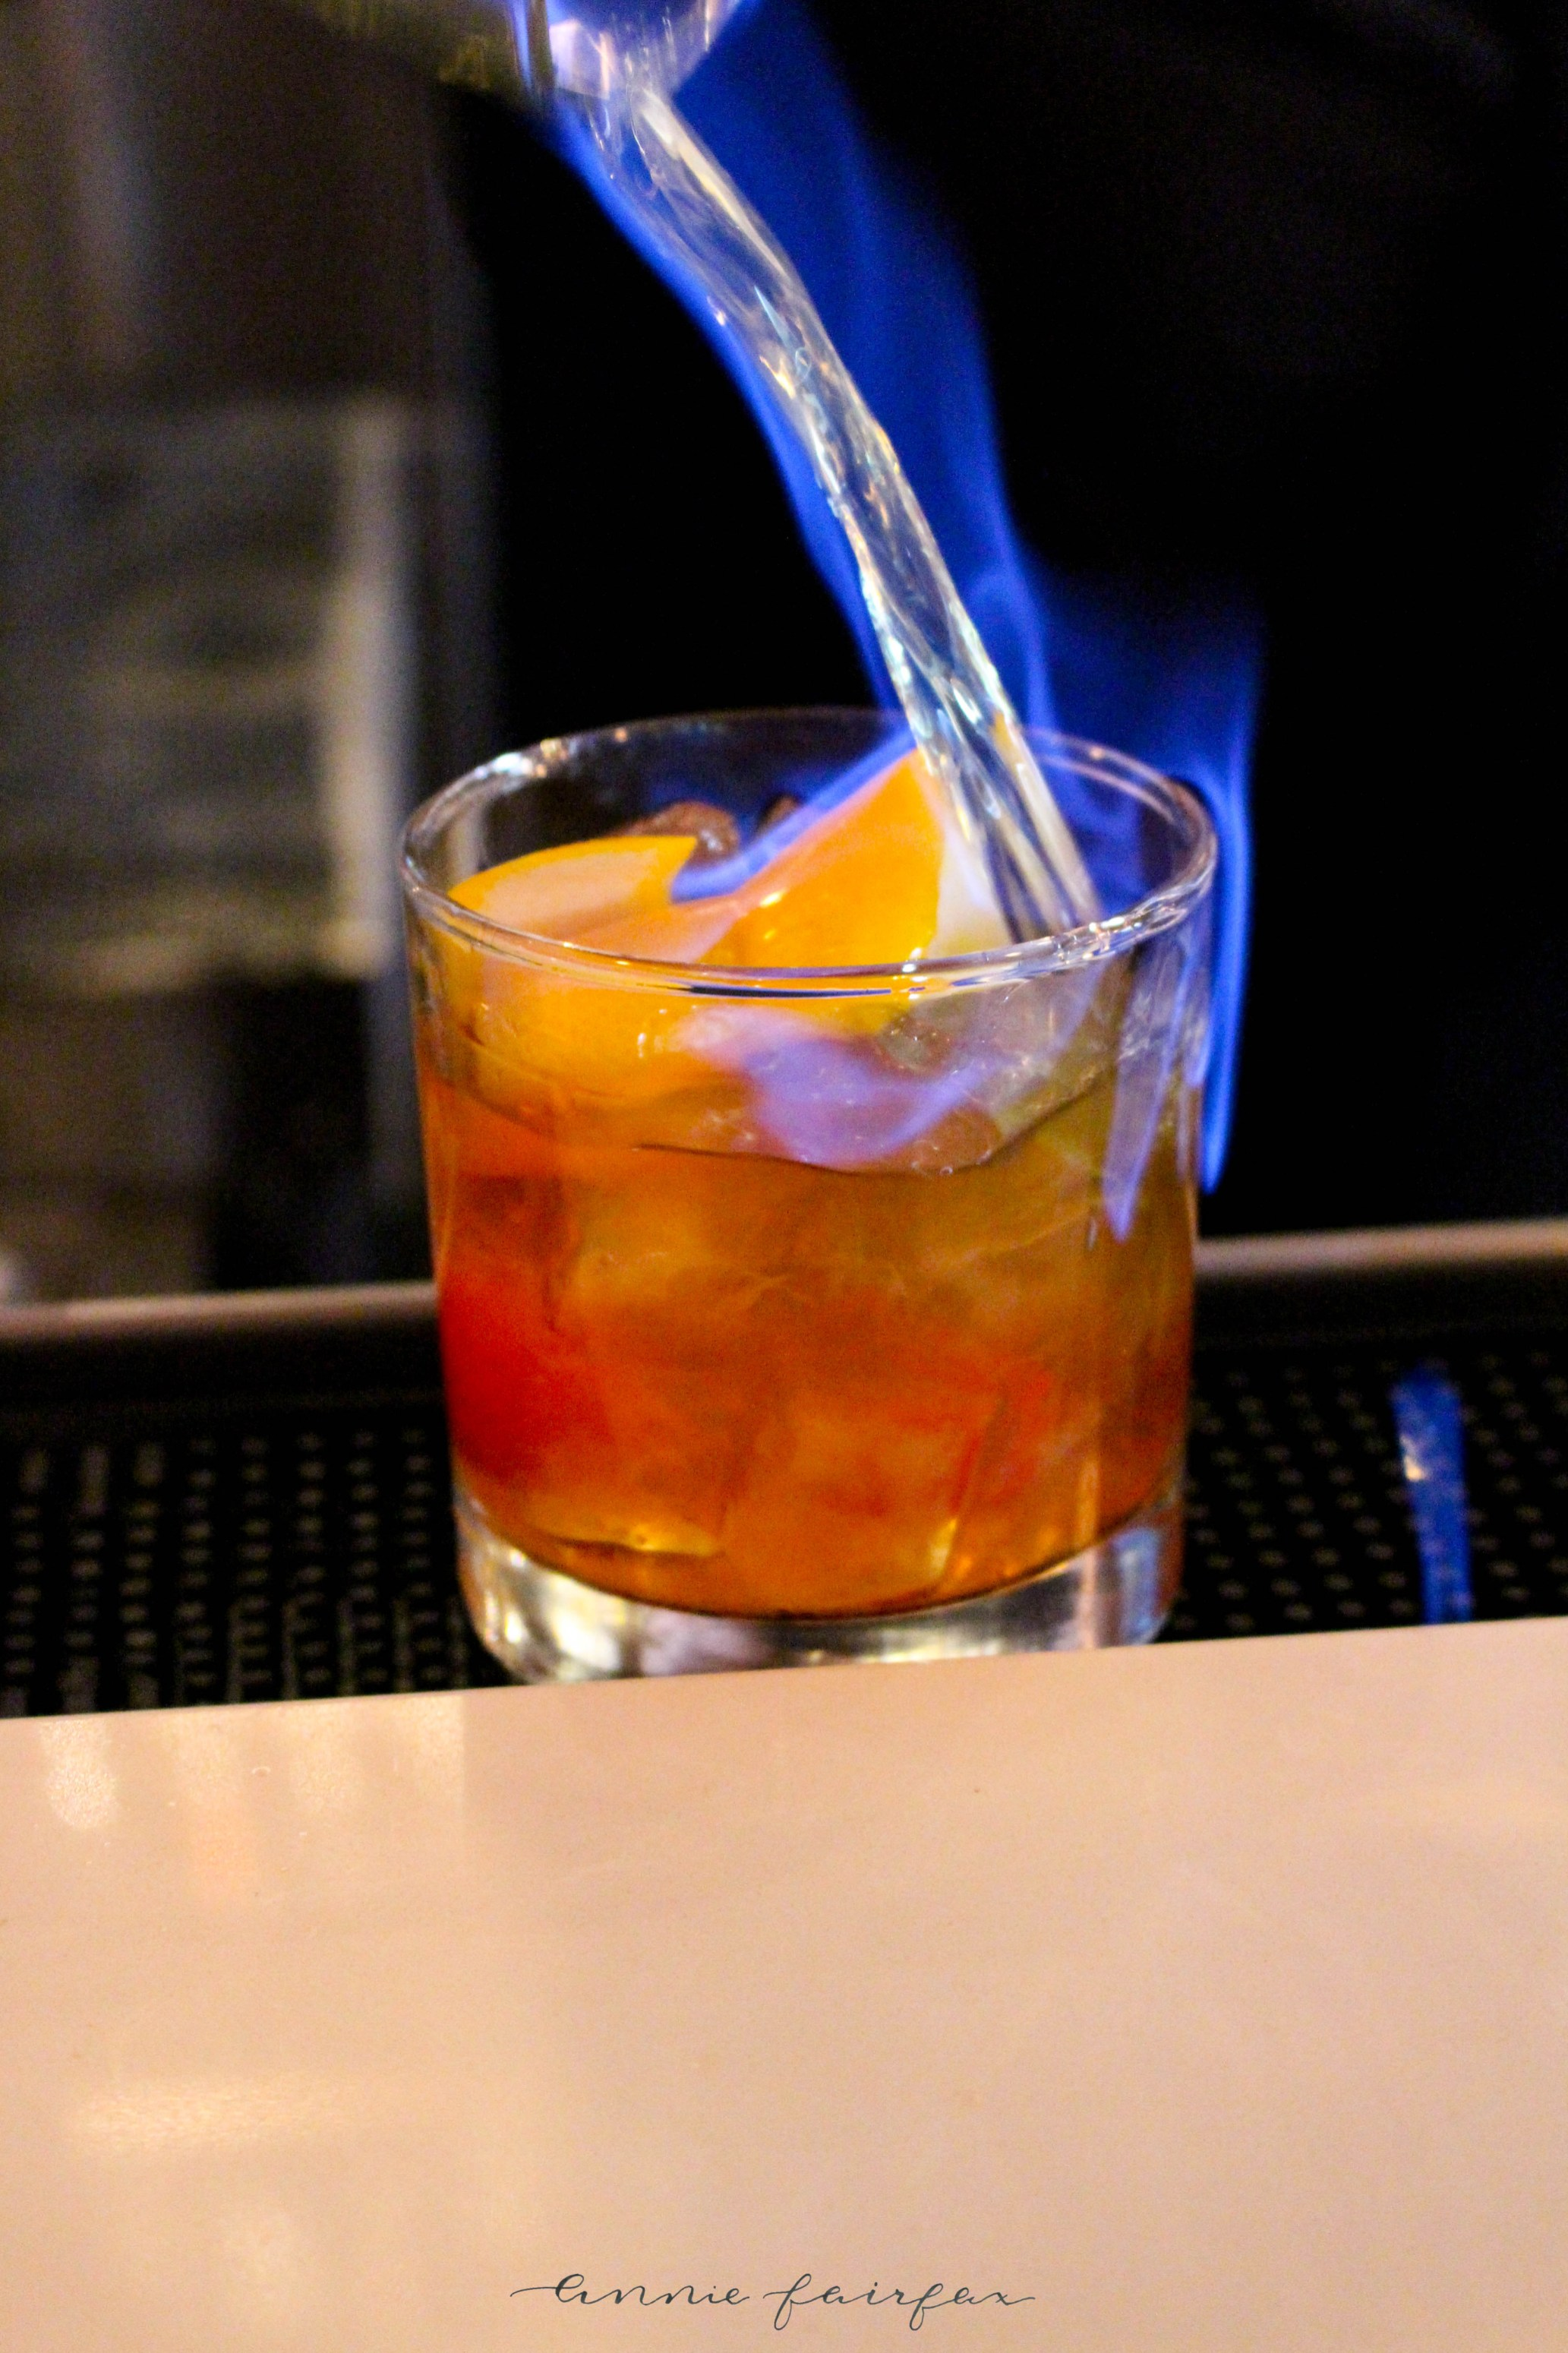 Prost Winebar & Charcuterie Frankenmuth, MI Flaming Drink Drink on Fire Alcohol Drinks